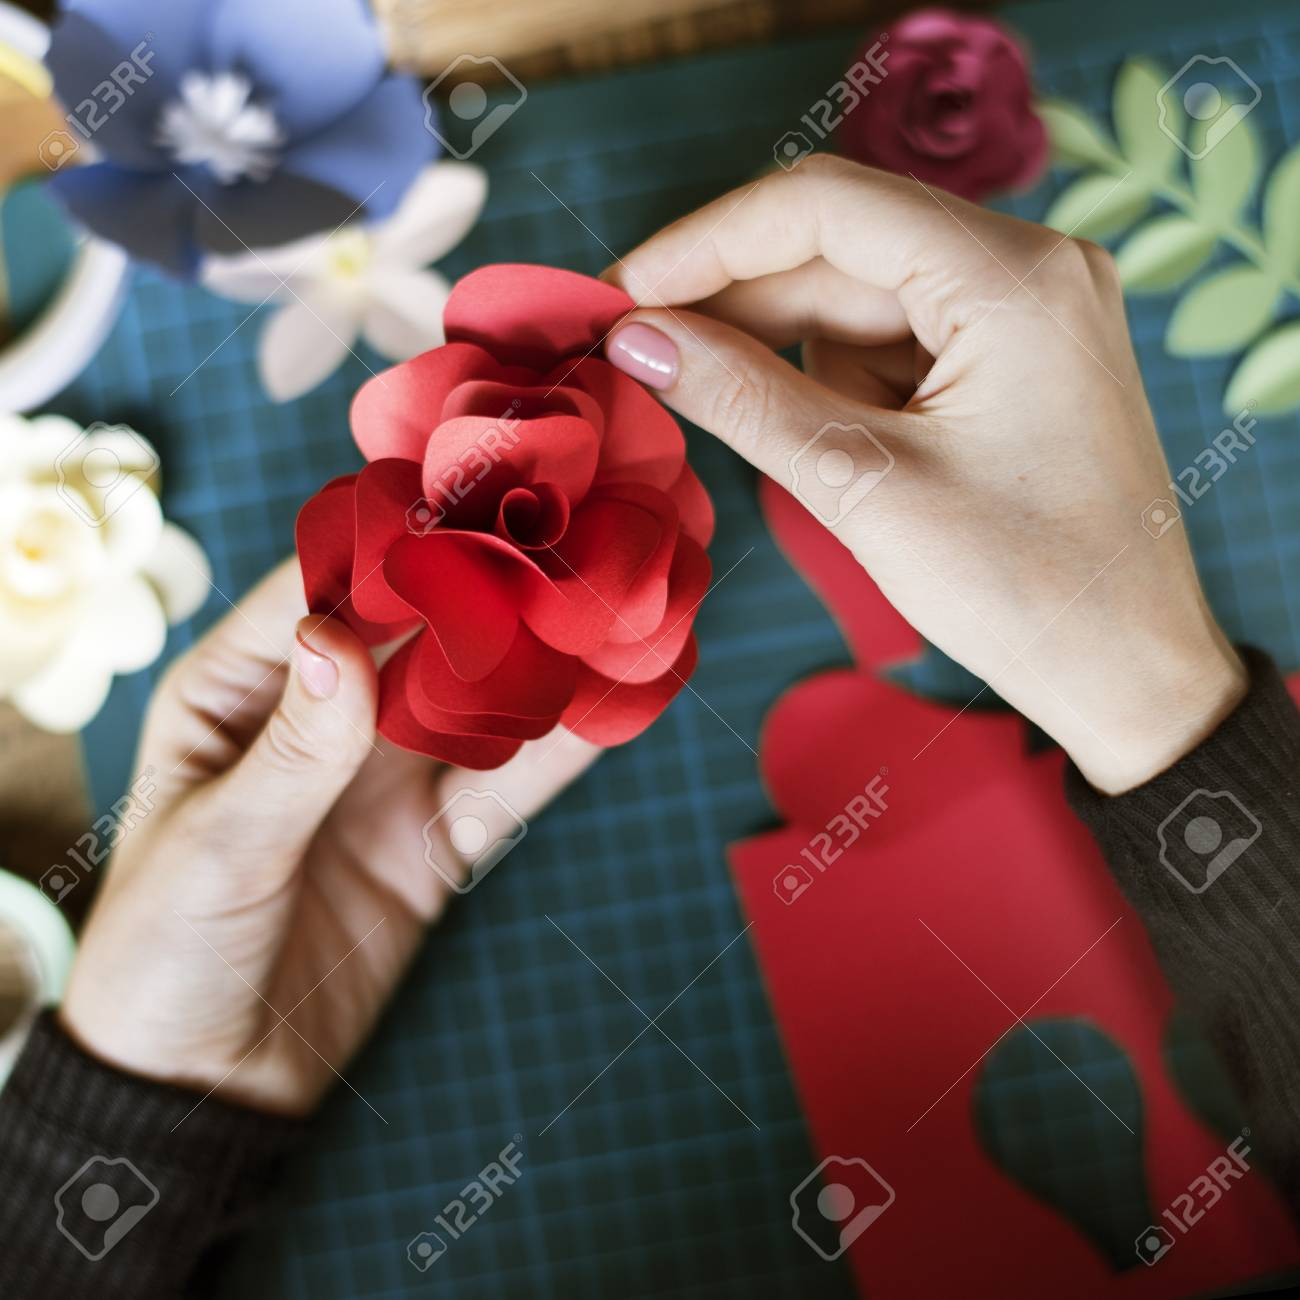 People making paper craft flower art stock photo picture and people making paper craft flower art stock photo 80936062 mightylinksfo